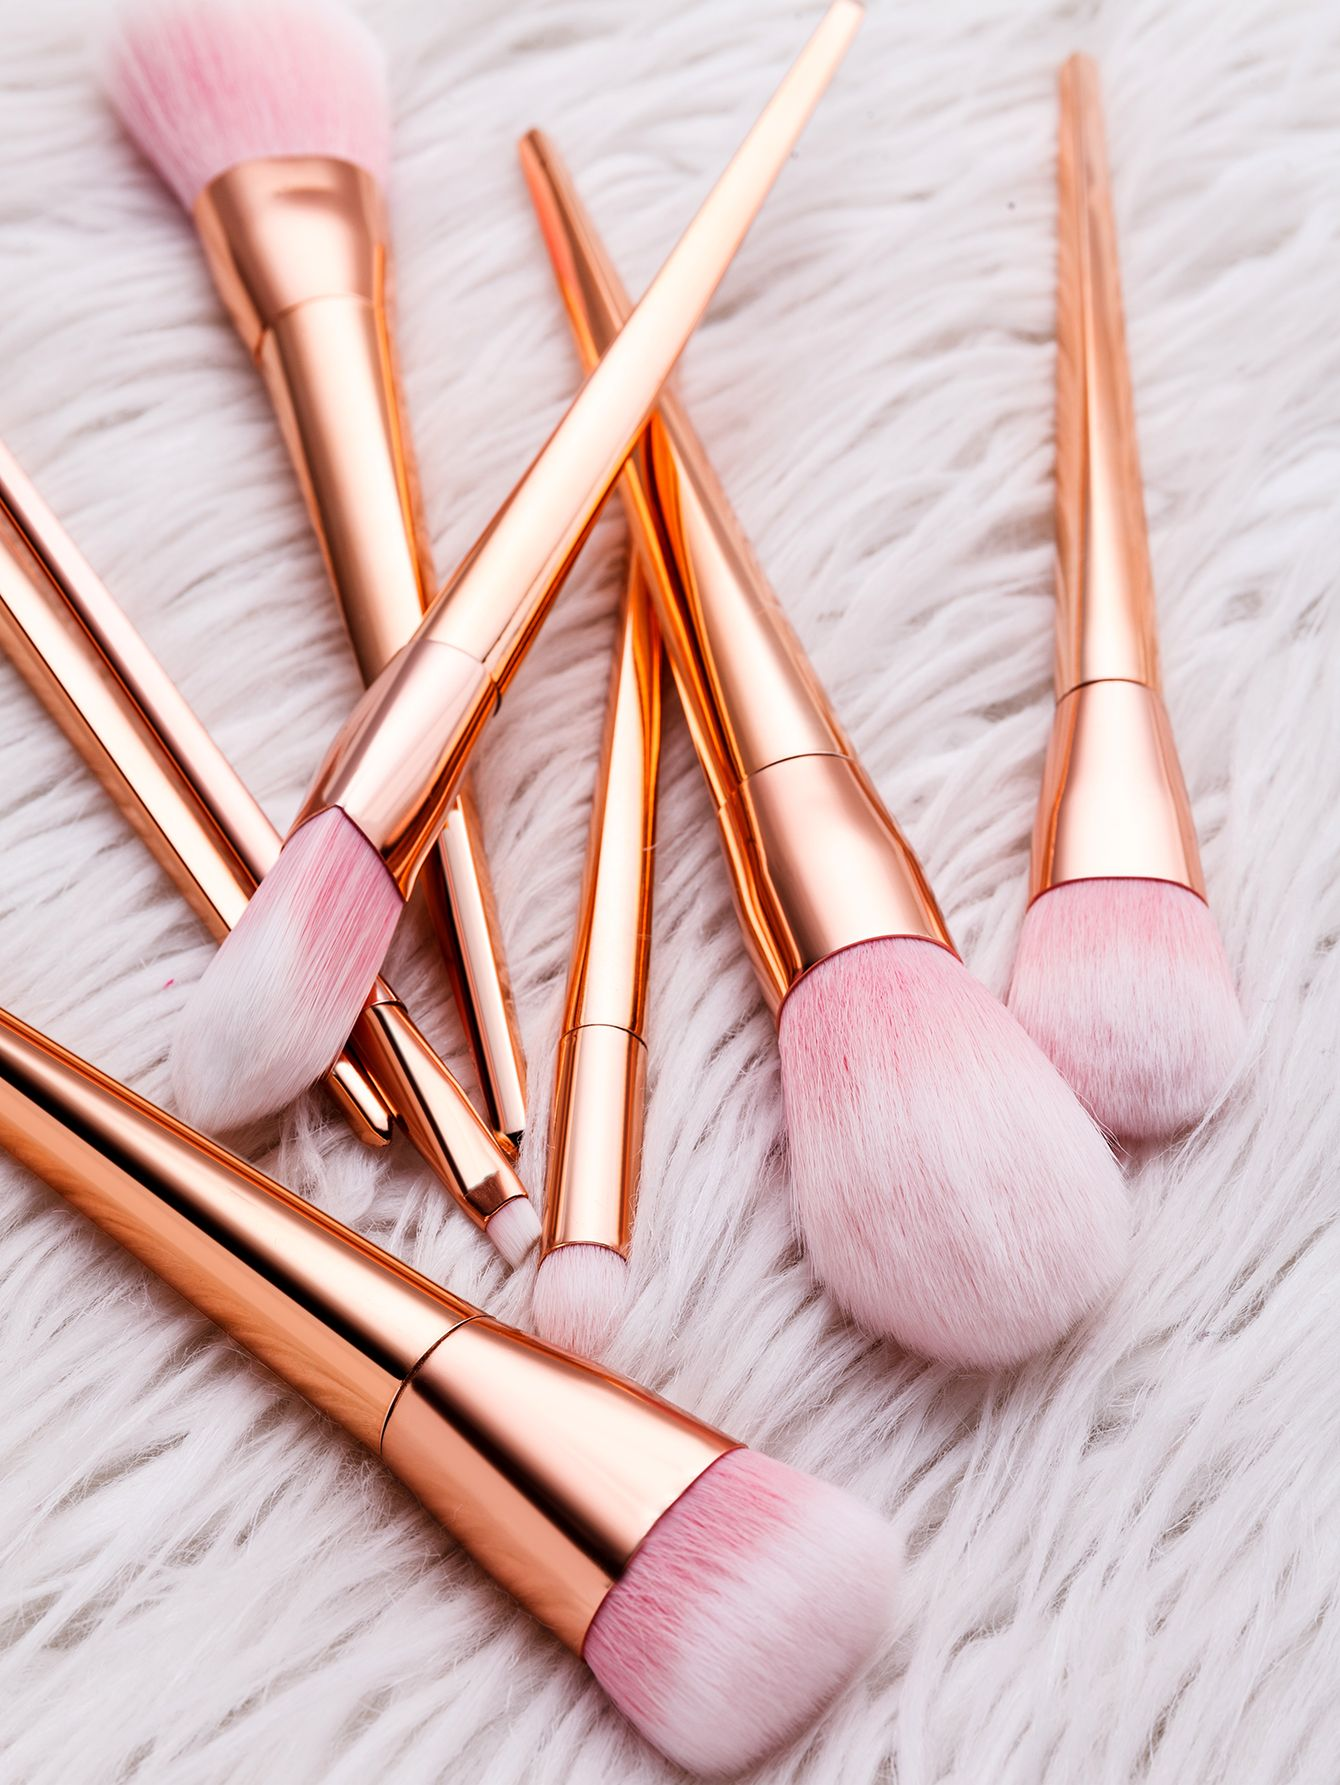 d815b4b9c1 Shop Pink And Gold Professional Cosmetic Makeup Brush Set online. SheIn  offers Pink And Gold Professional Cosmetic Makeup Brush Set & more to fit  your ...